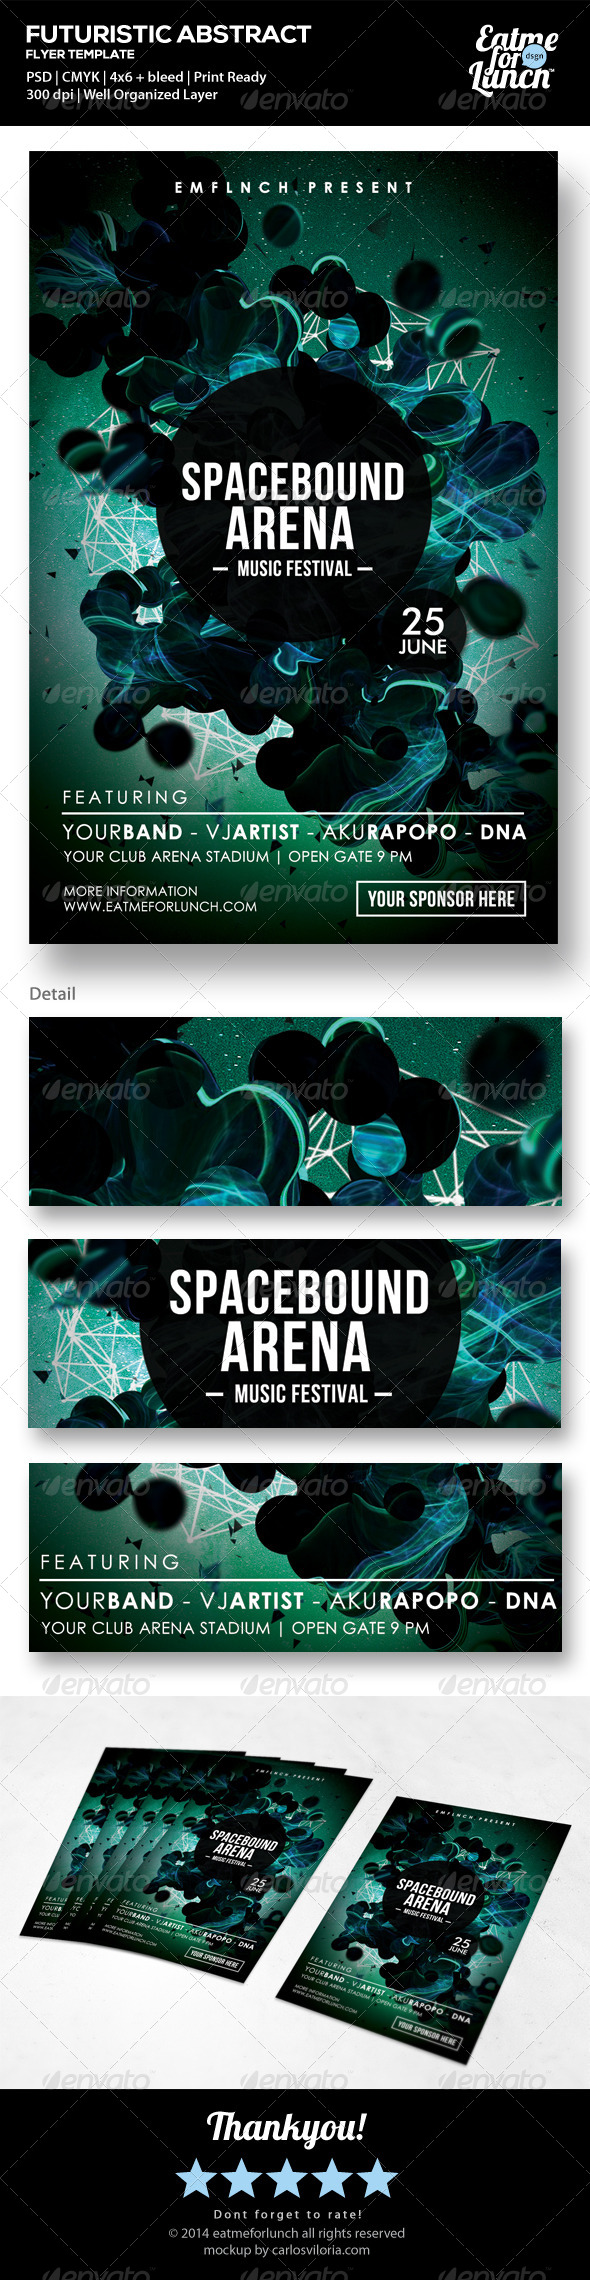 GraphicRiver Futuristic Abstract Flyer Template Spacebound 7390528